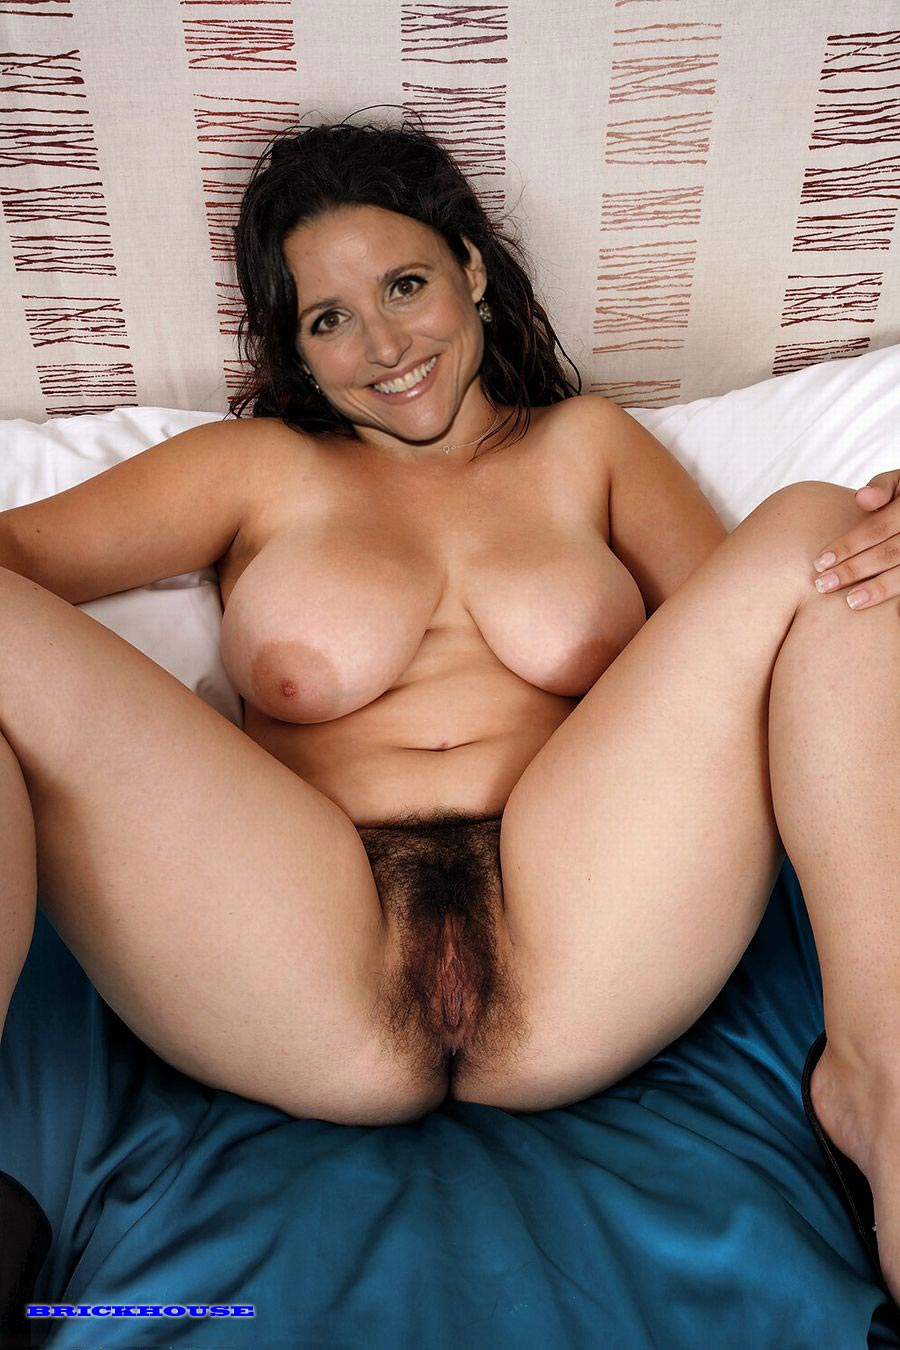 Julia louis dreyfus sex pivs